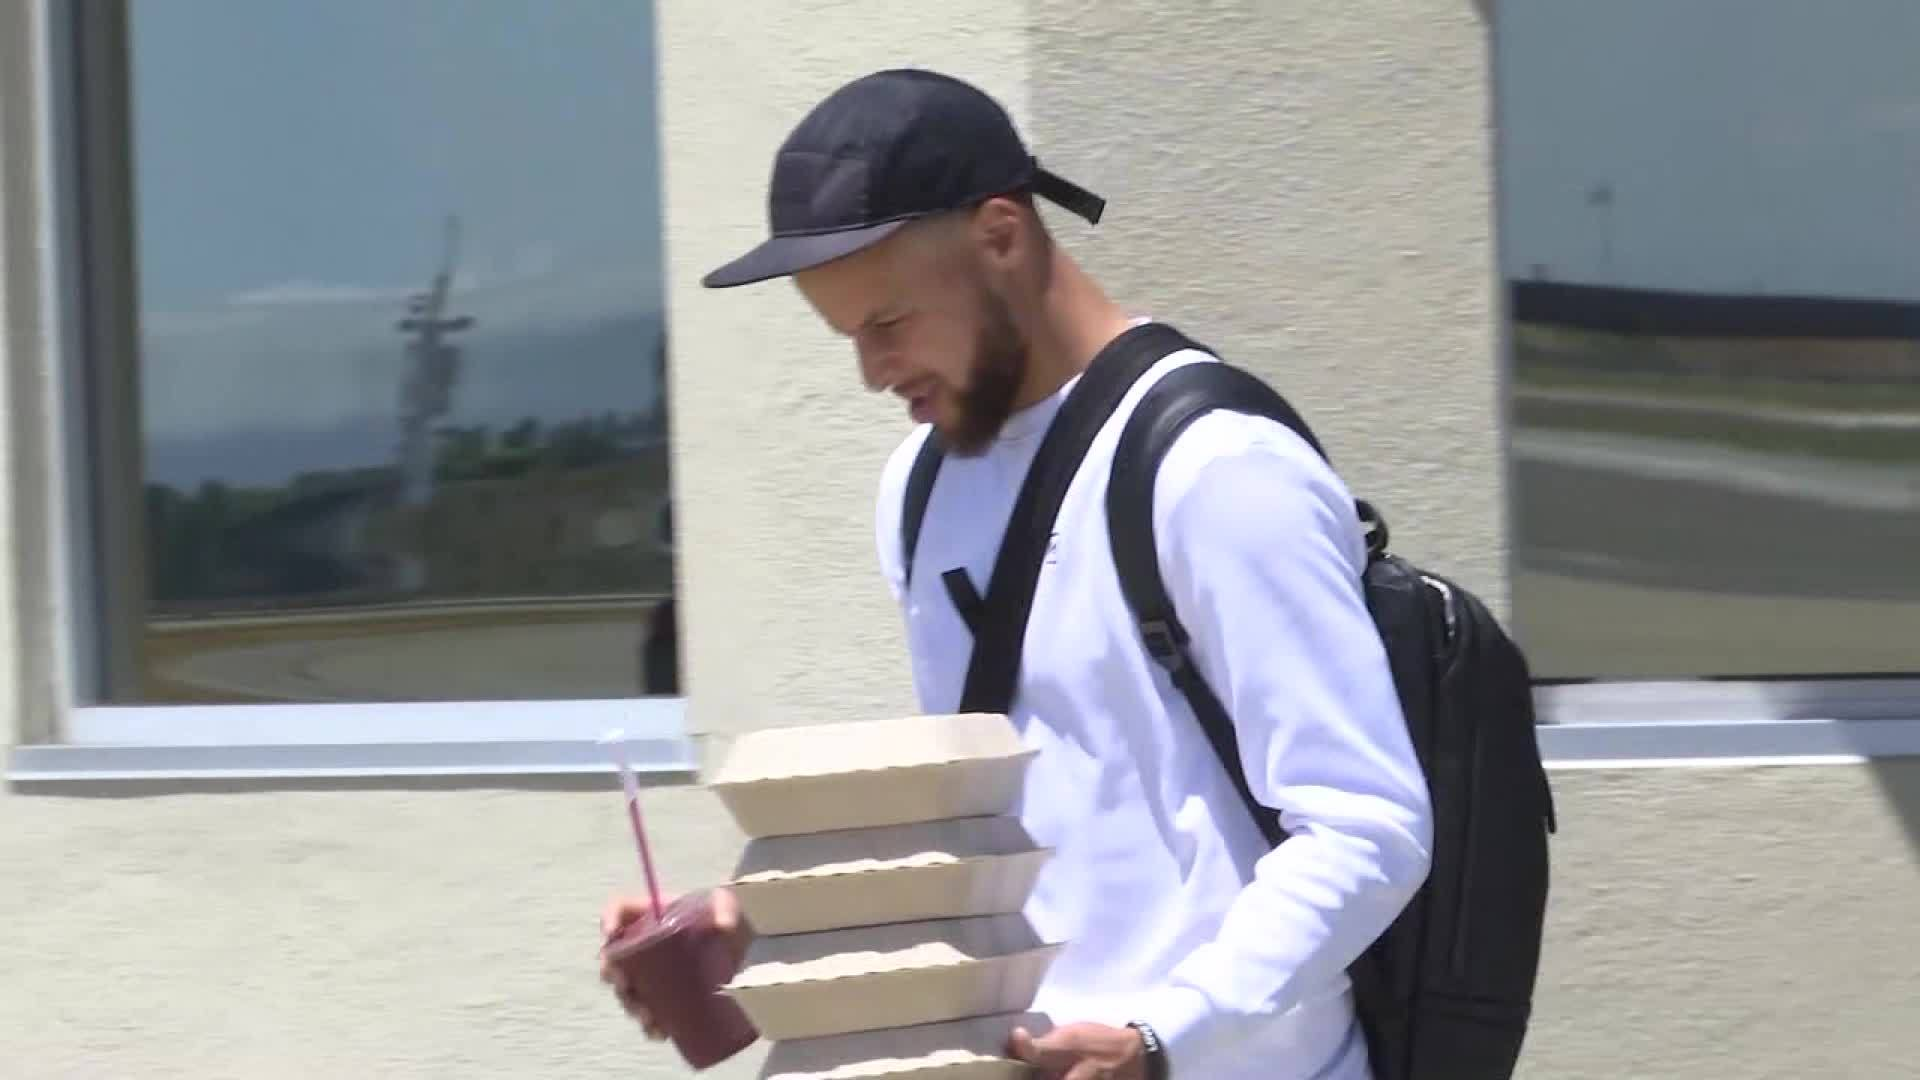 Steph Curry boards Toronto-bound plane